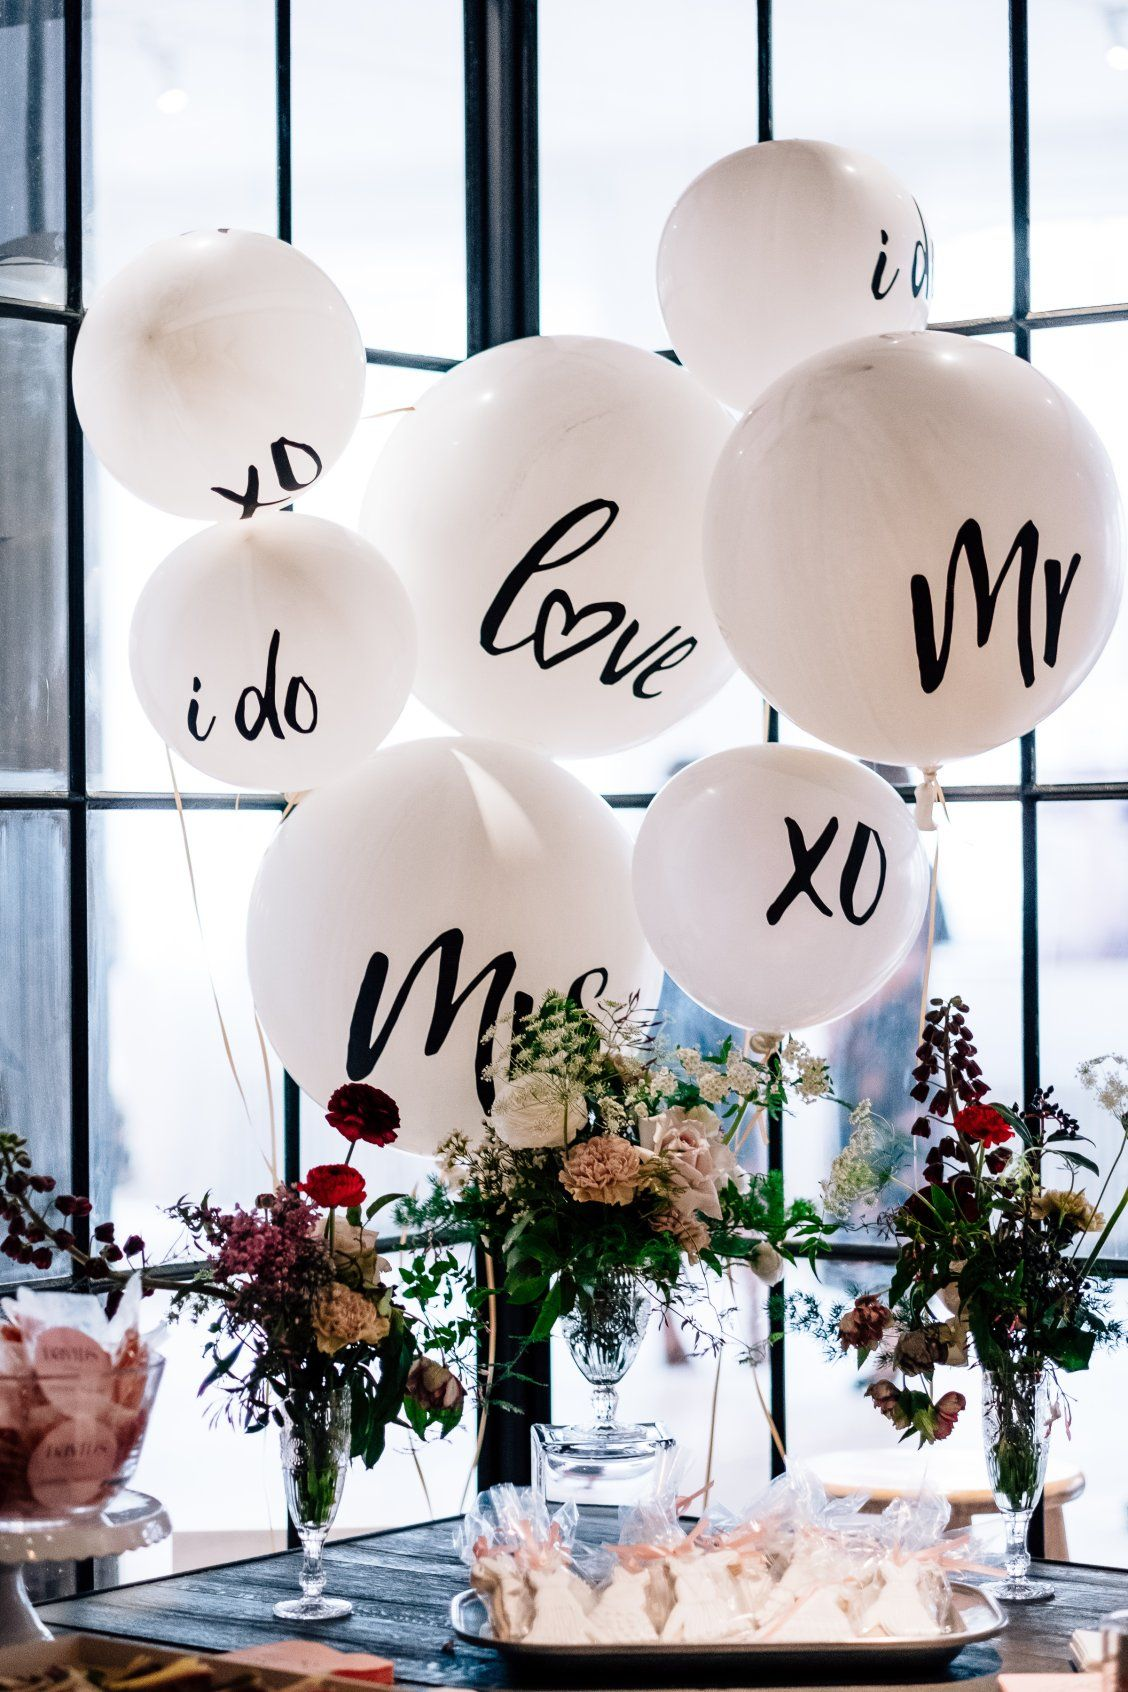 Move over flowers! We are loving wedding balloon decor! Shop these oversized love balloons, mr and mrs balloons, I Do balloons and XO balloons at davidsbridal.com #engagementparty